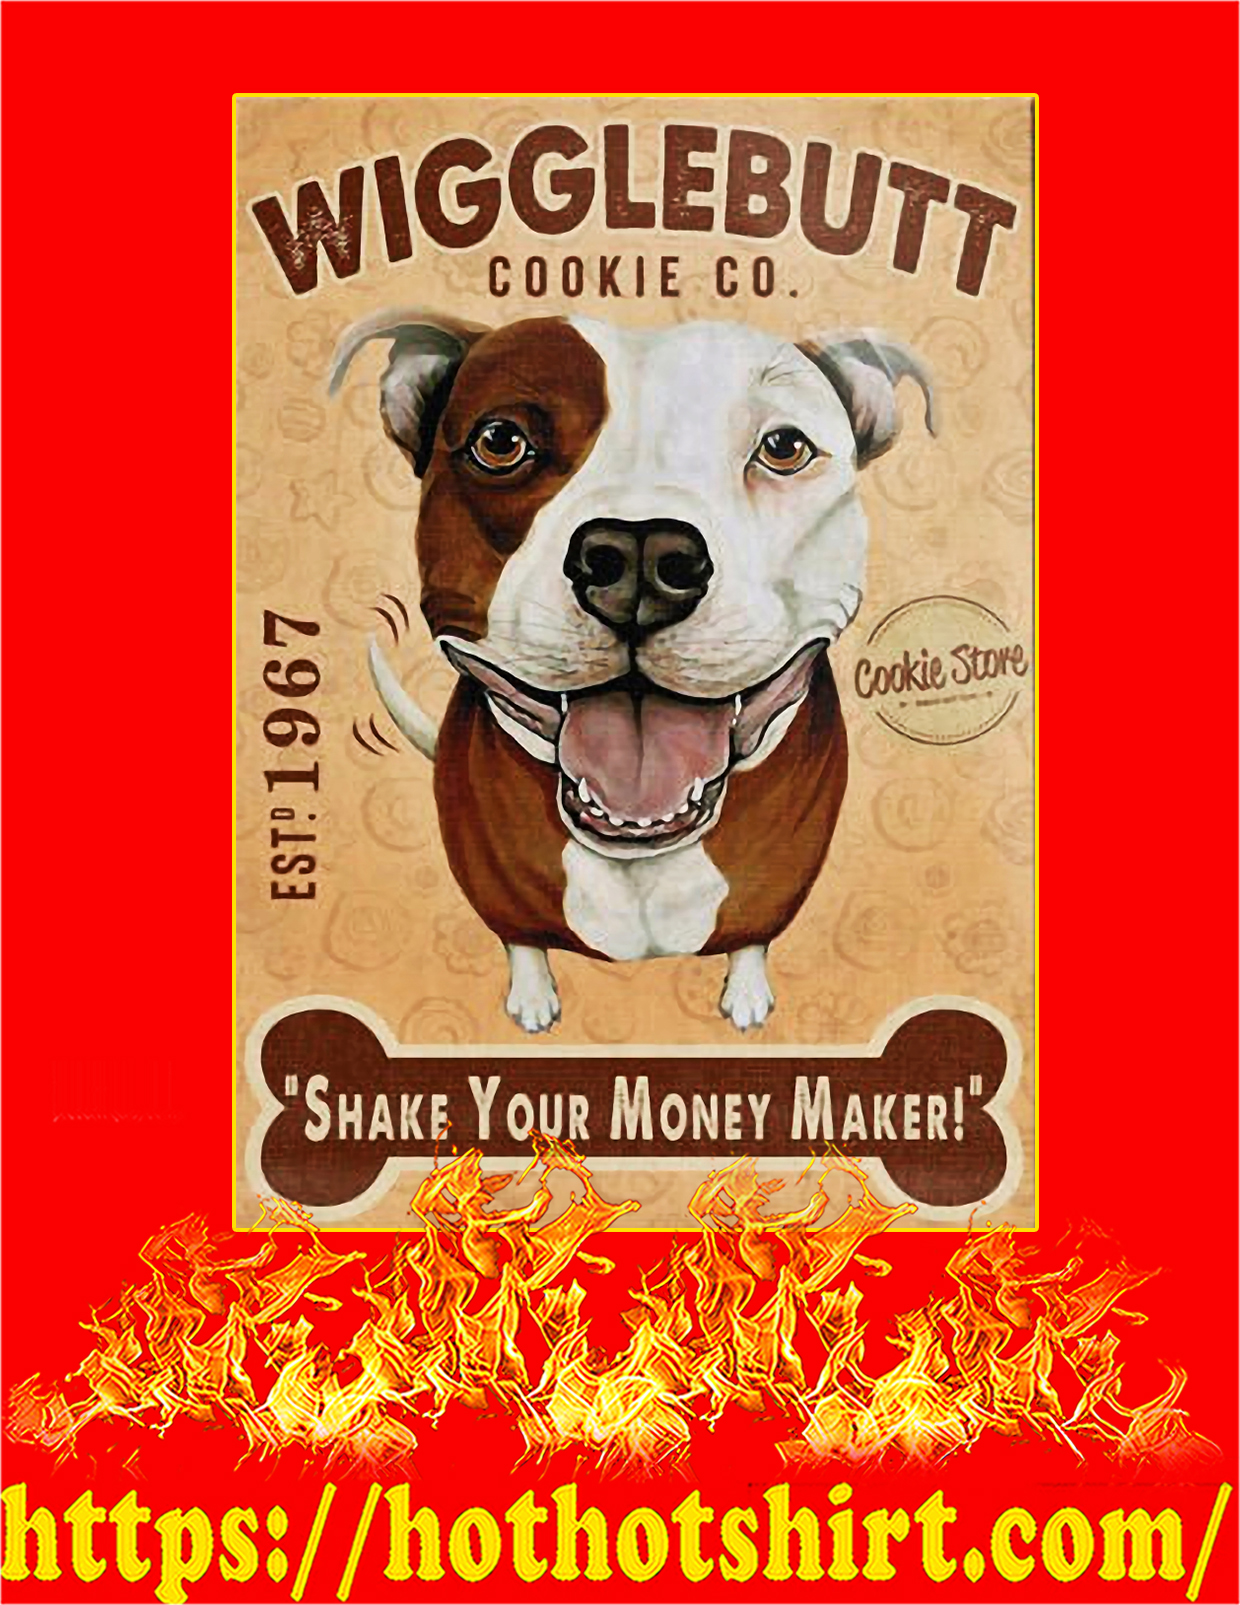 Wigglebutt pit bull dog cookie company poster